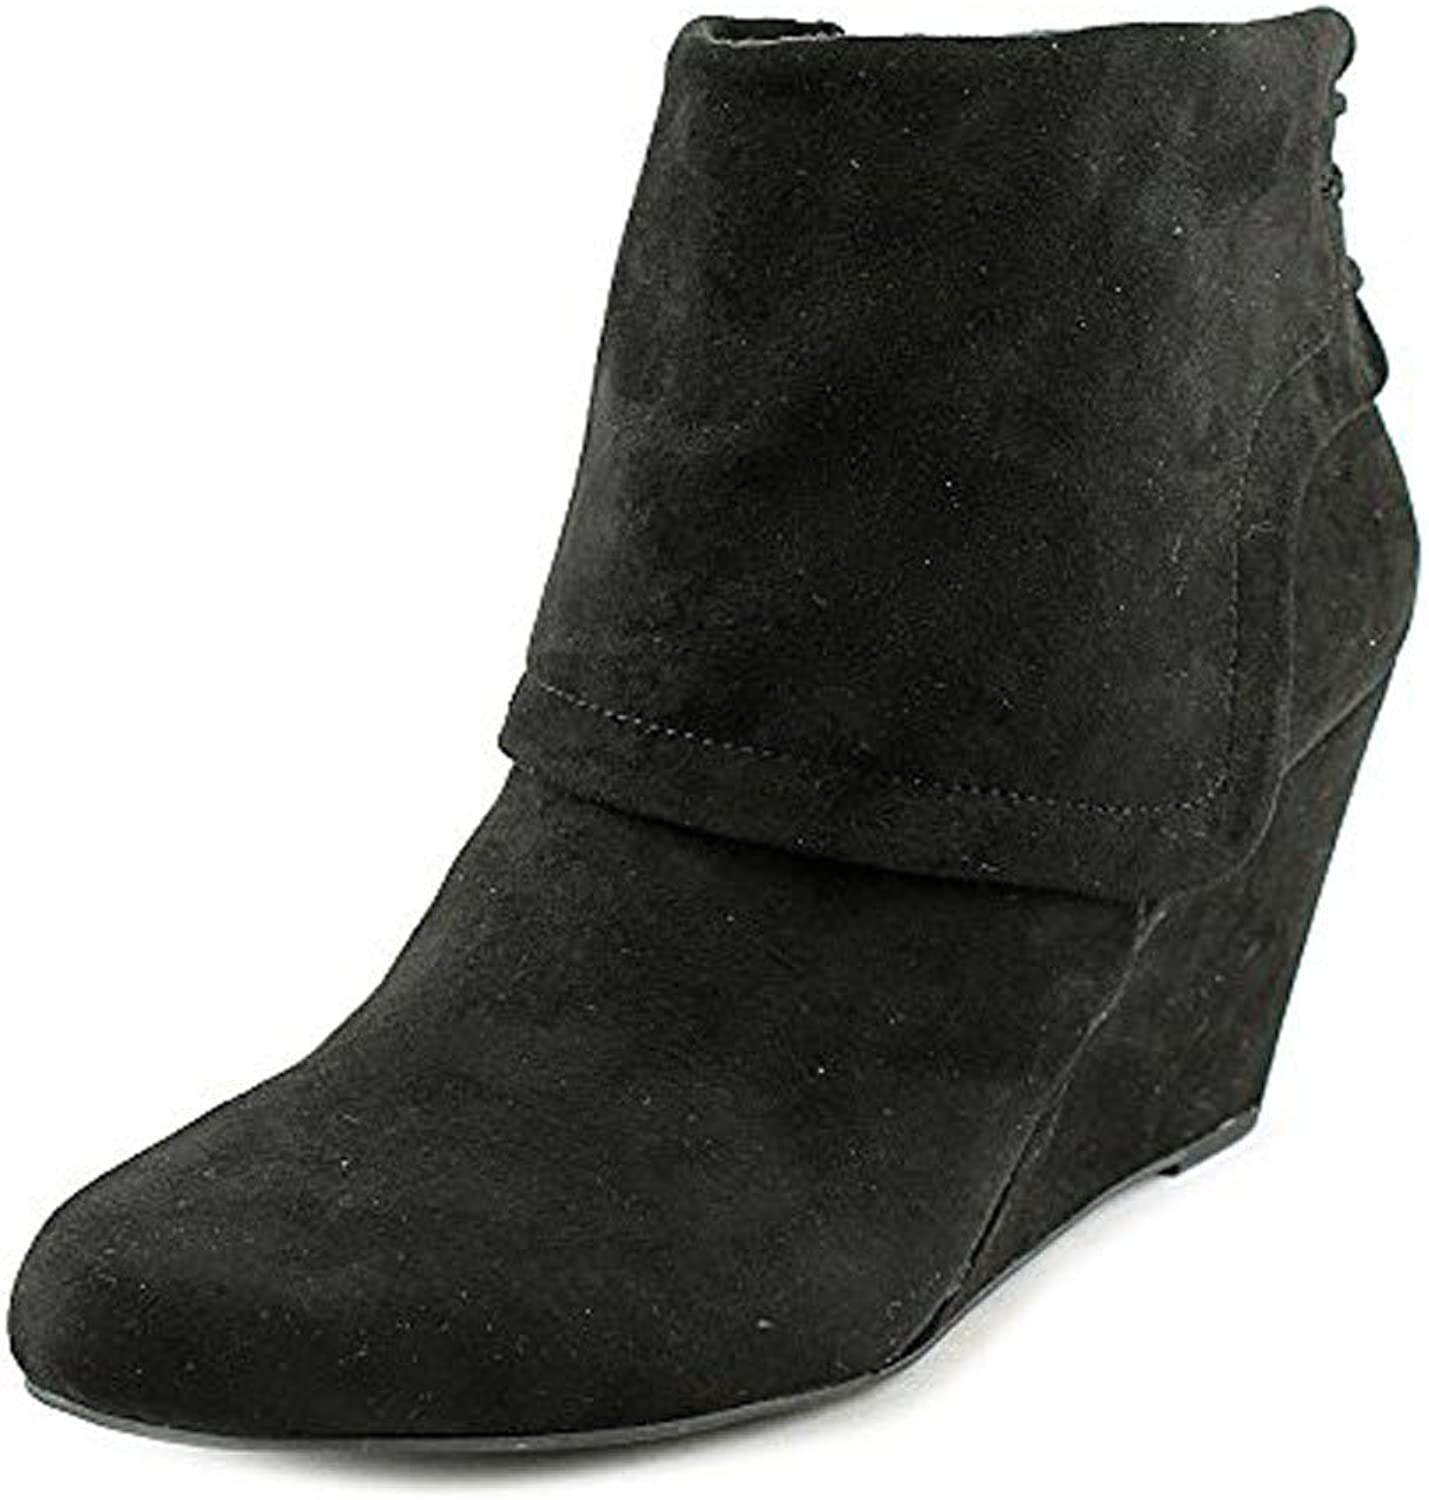 Jessica Simpson Women's Reaca Suede Ankle-High Suede Boot